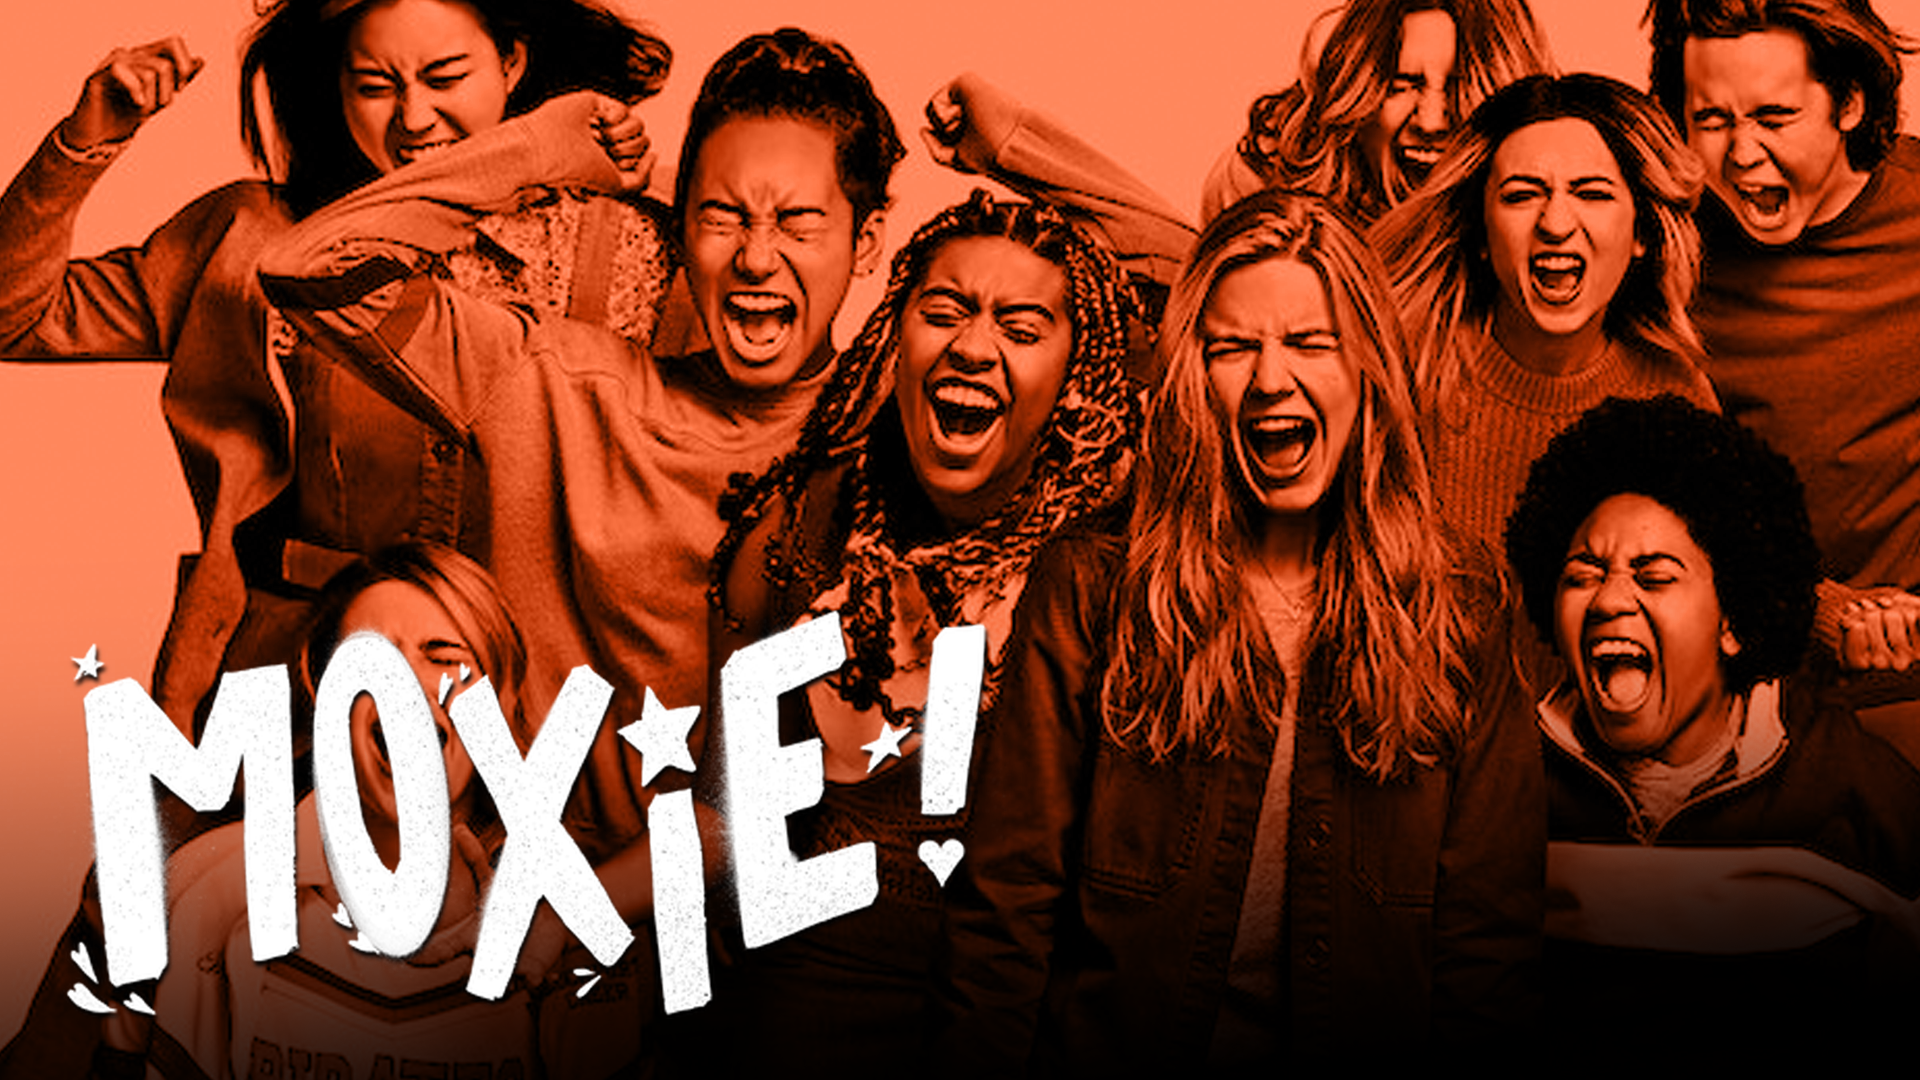 Moxie has a good message, but it's all over the place